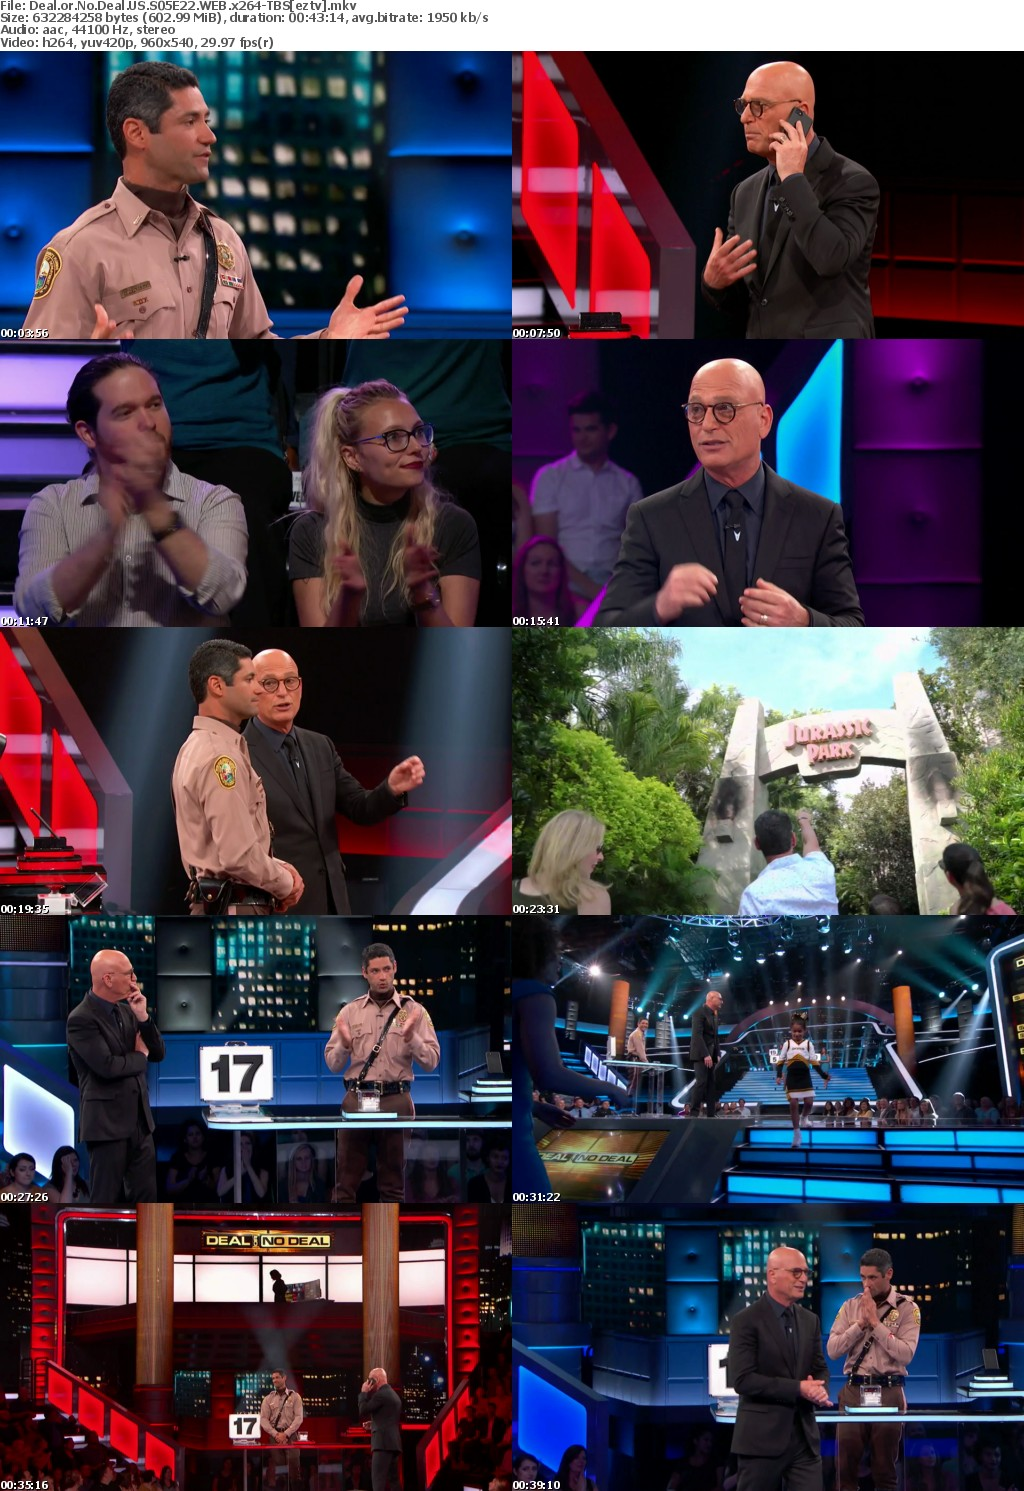 Deal or No Deal US S05E22 WEB x264-TBS